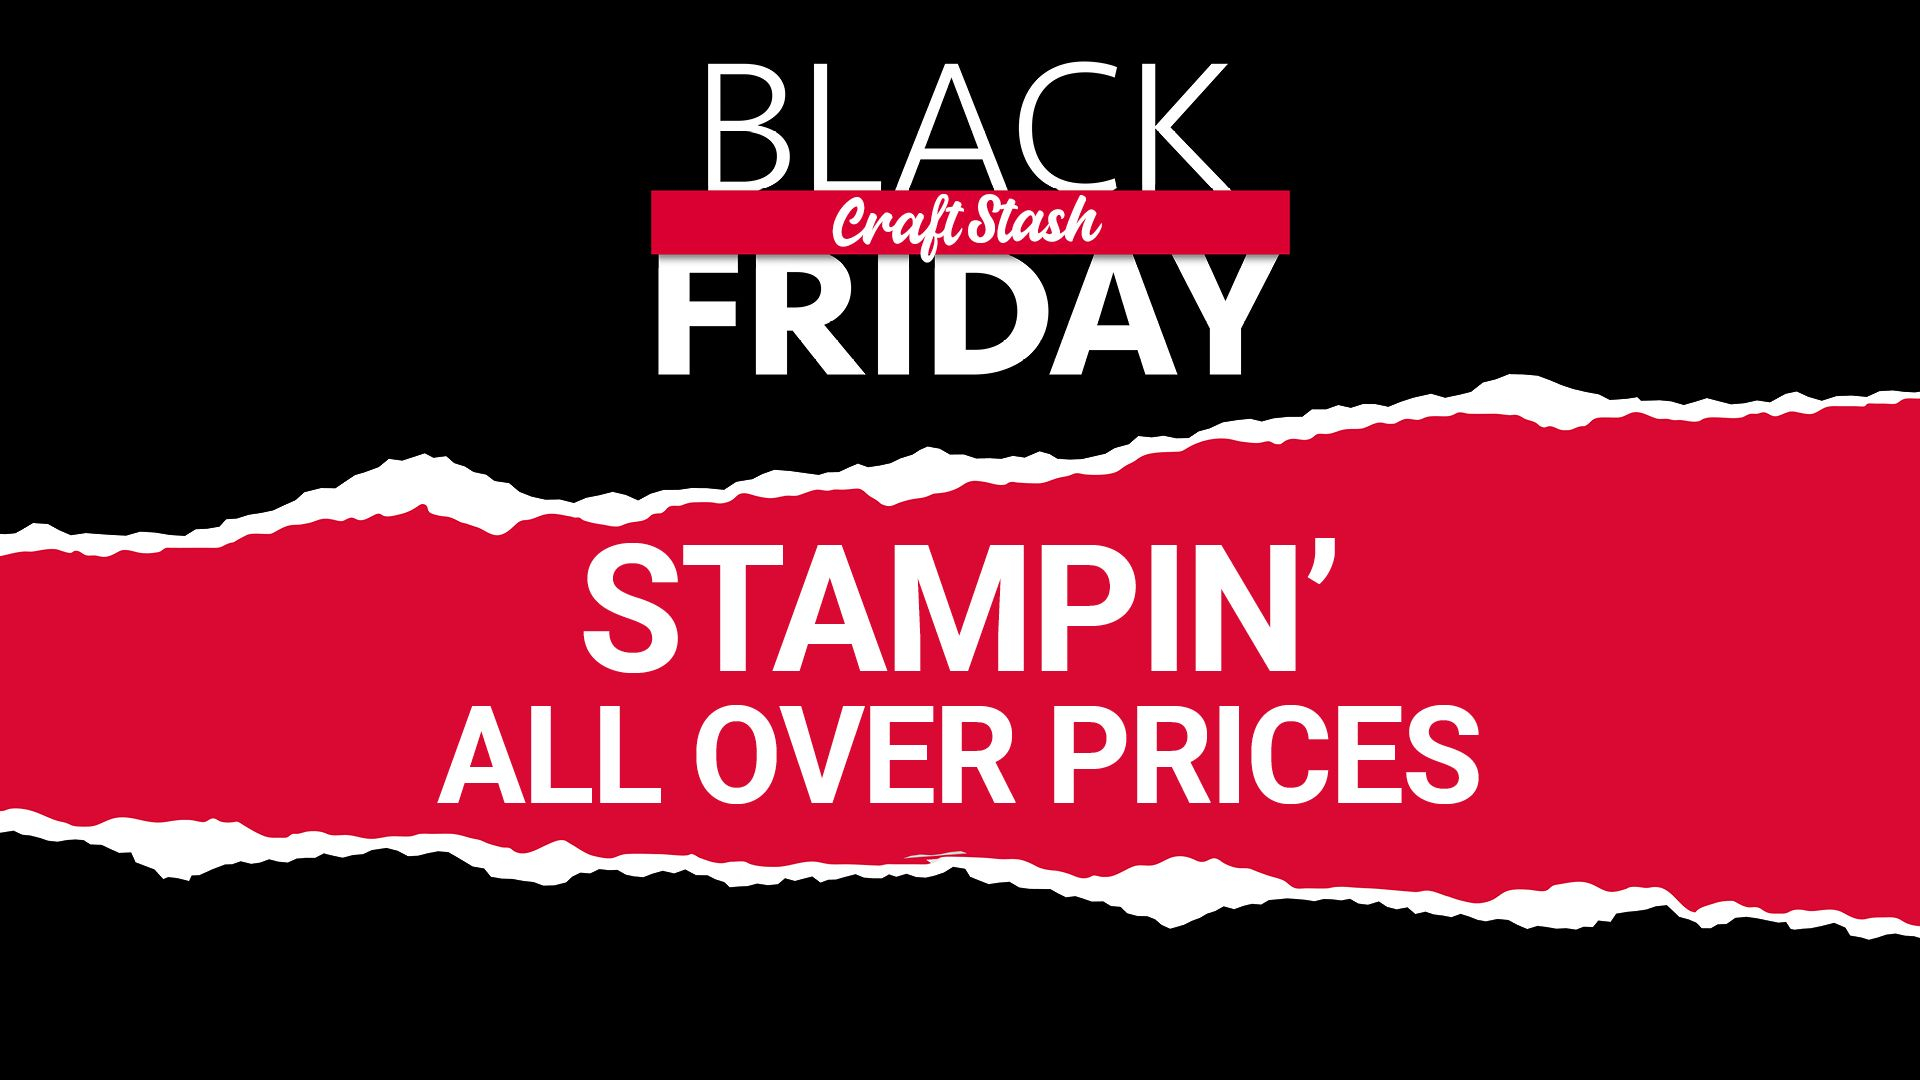 CraftStash Black Friday Stampin' All Over Prices